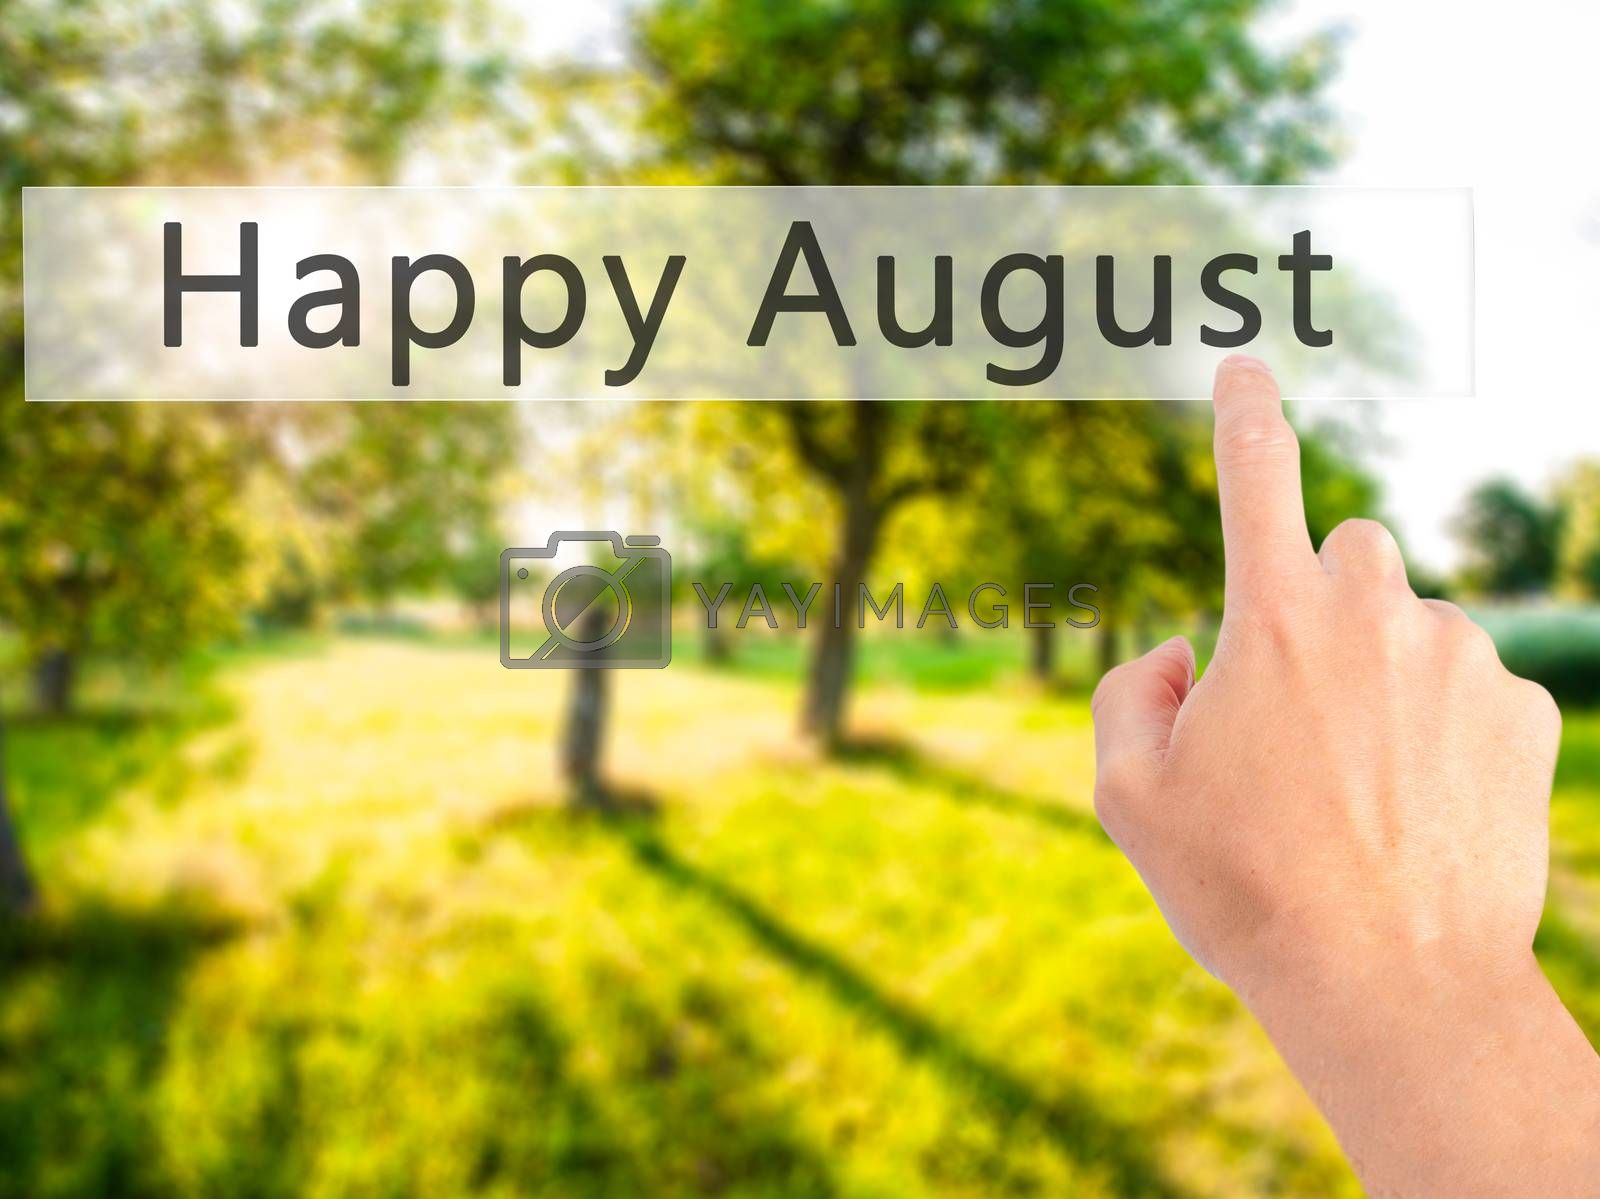 Happy August - Hand pressing a button on blurred background conc by jackald